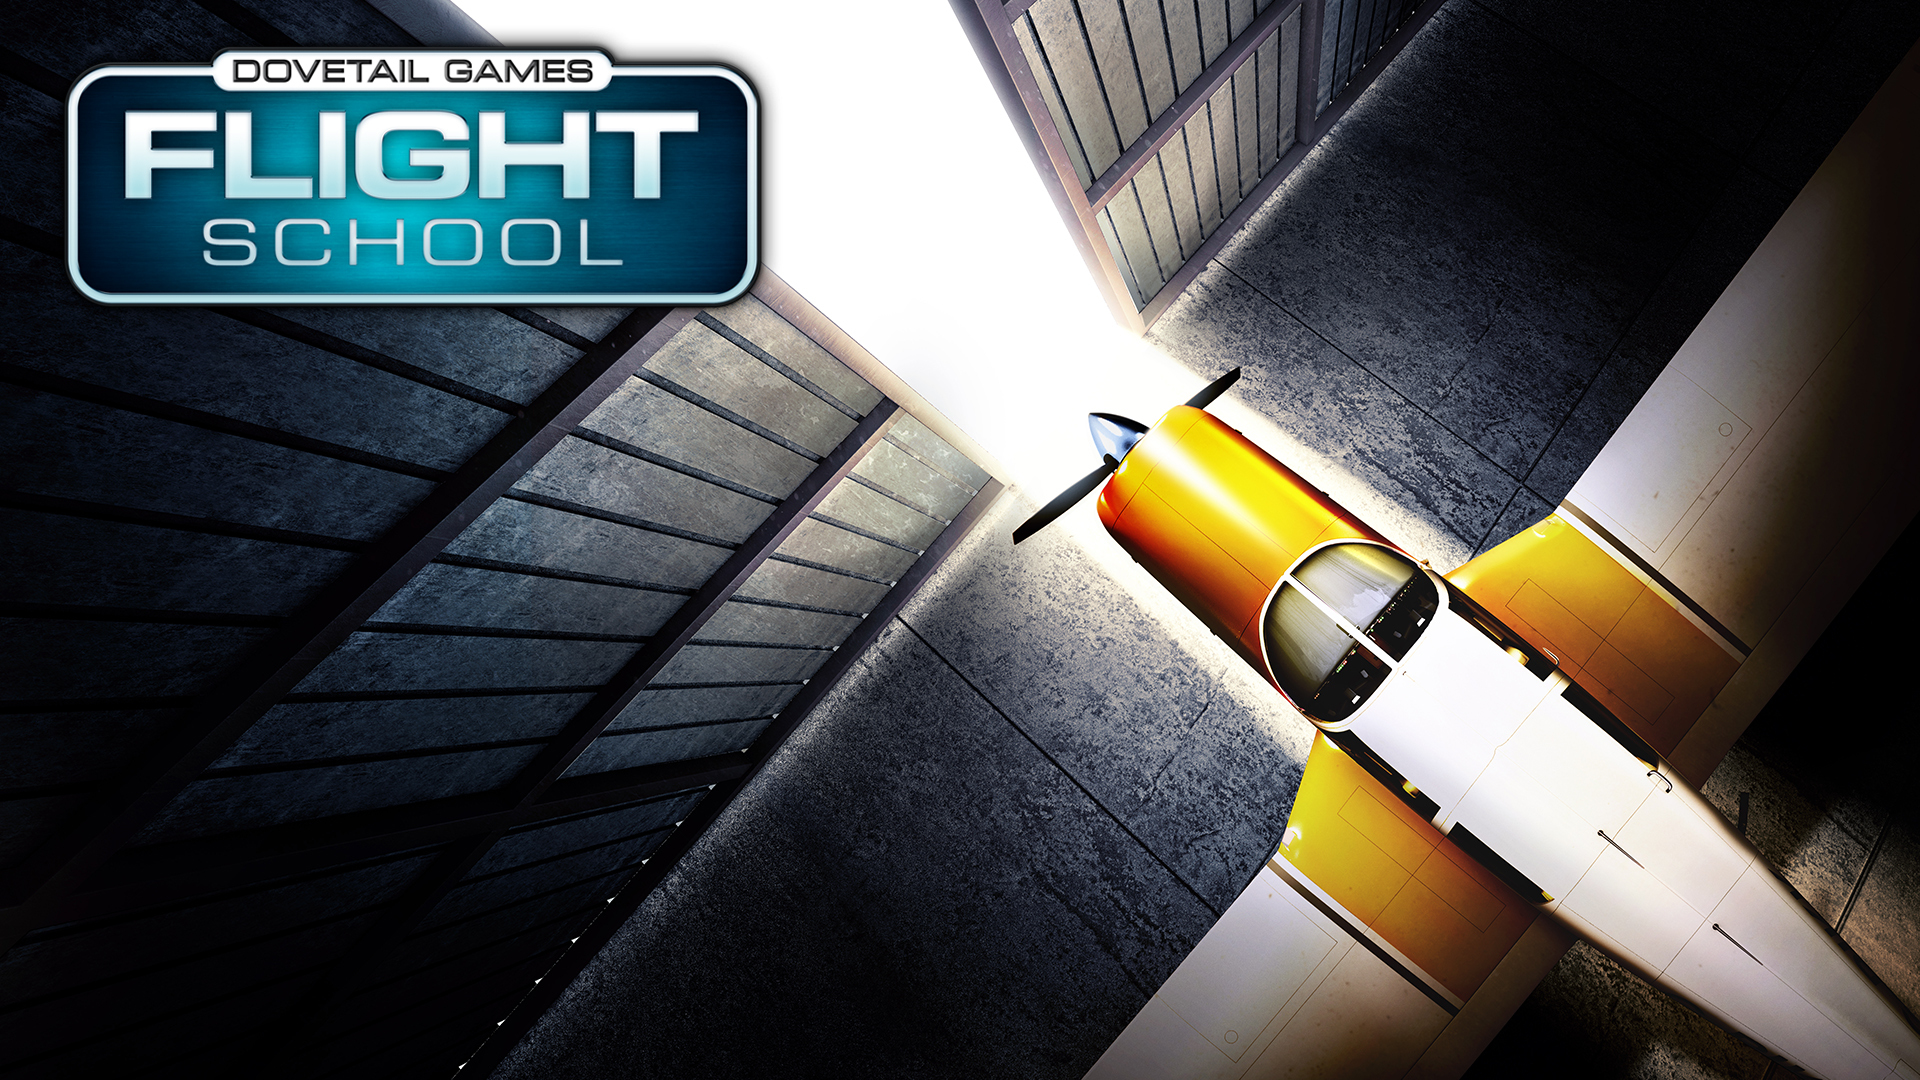 dovetail-games-flight-school-ilk-tanitim